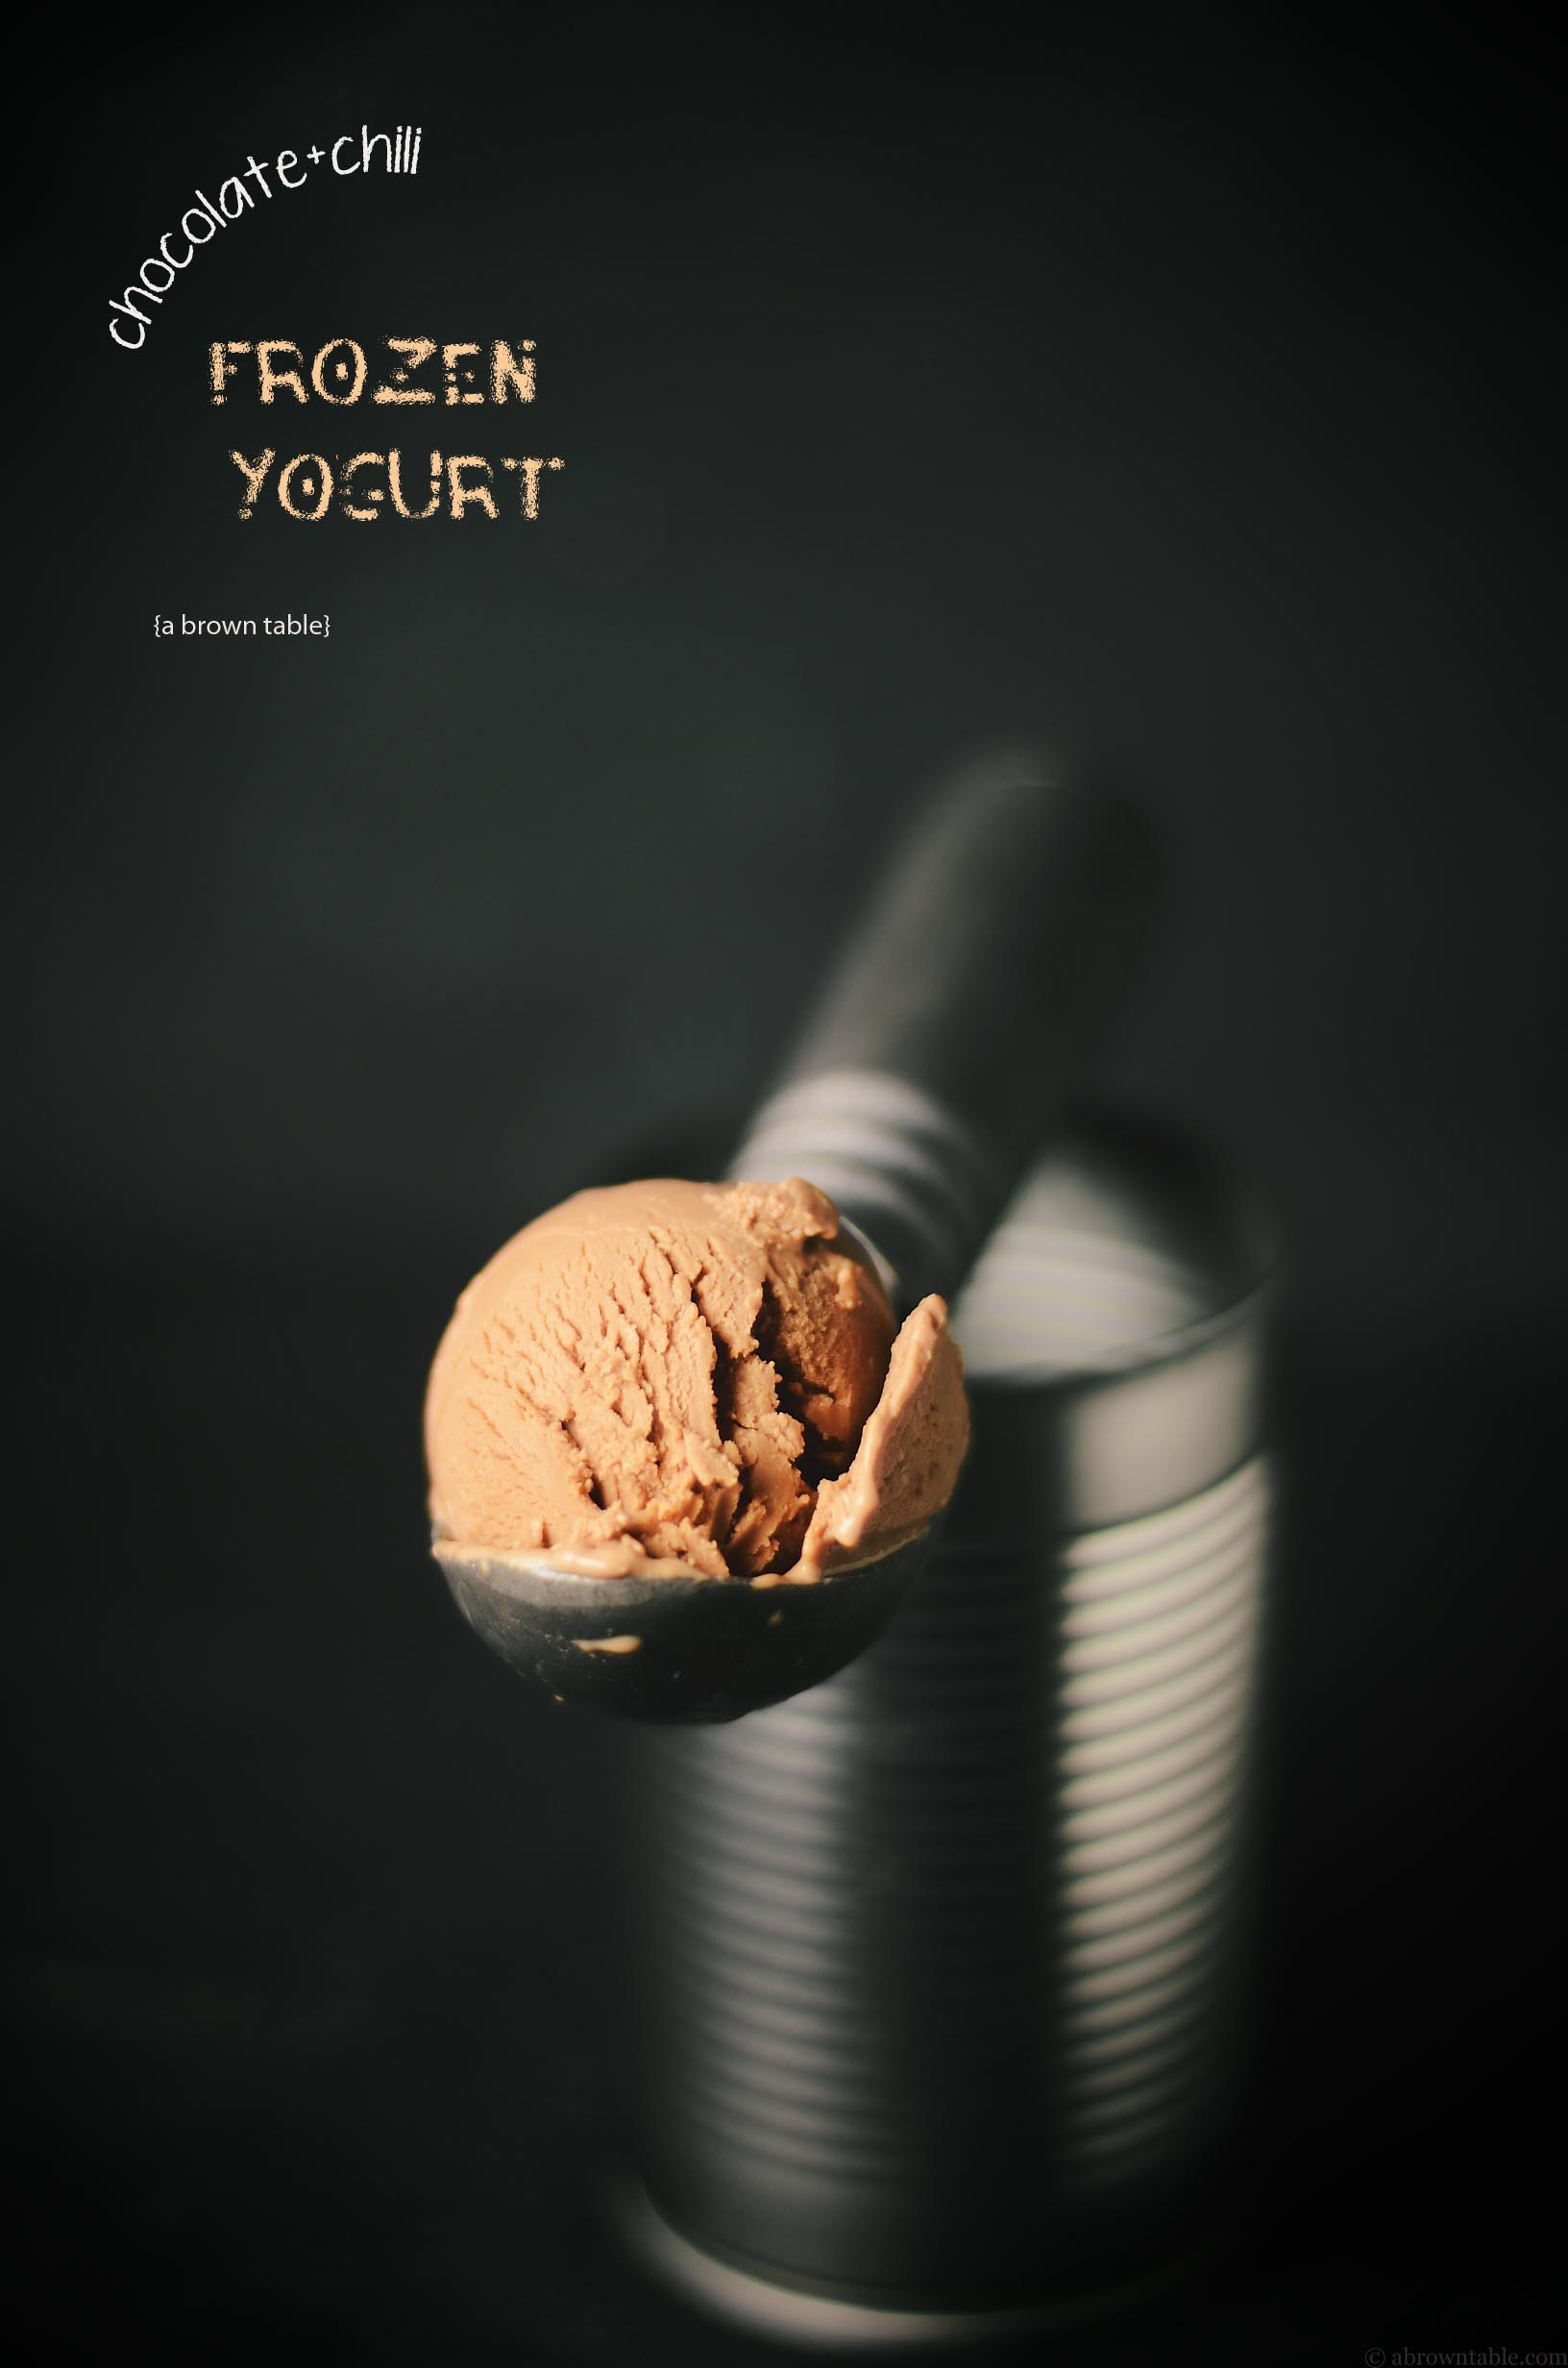 frozen chocolate chili yogurt